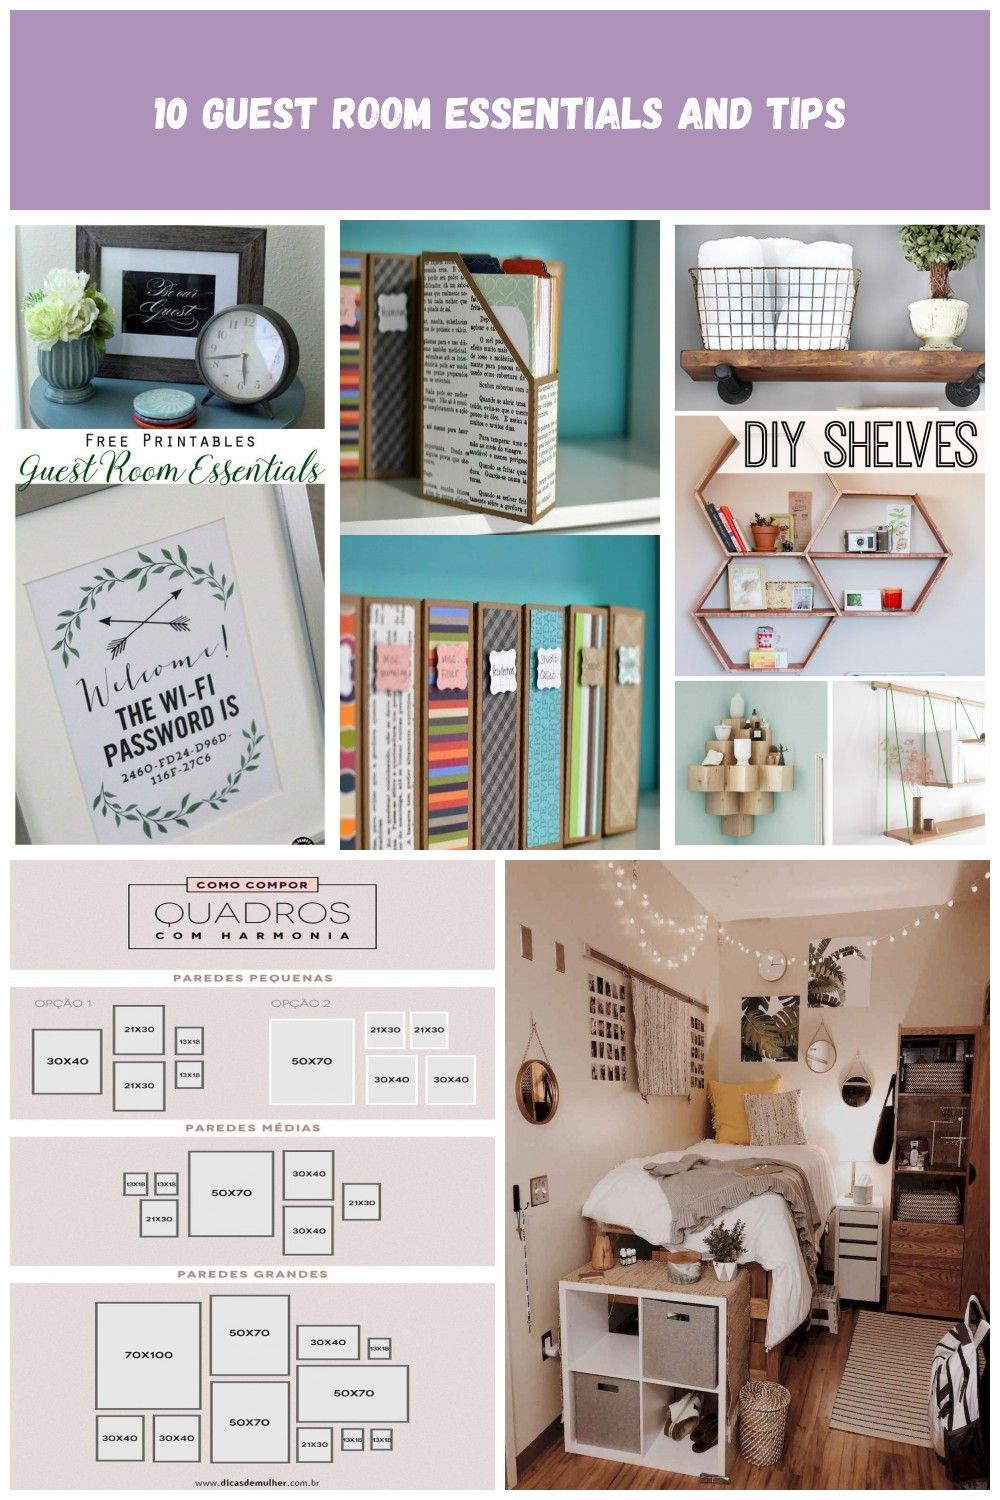 10 Guess Room Tips And Essentials Wifi Password Free Printable Guest Bedroom Ideas What Every Guest Bedr Guest Room Essentials Guess Room Room Essentials